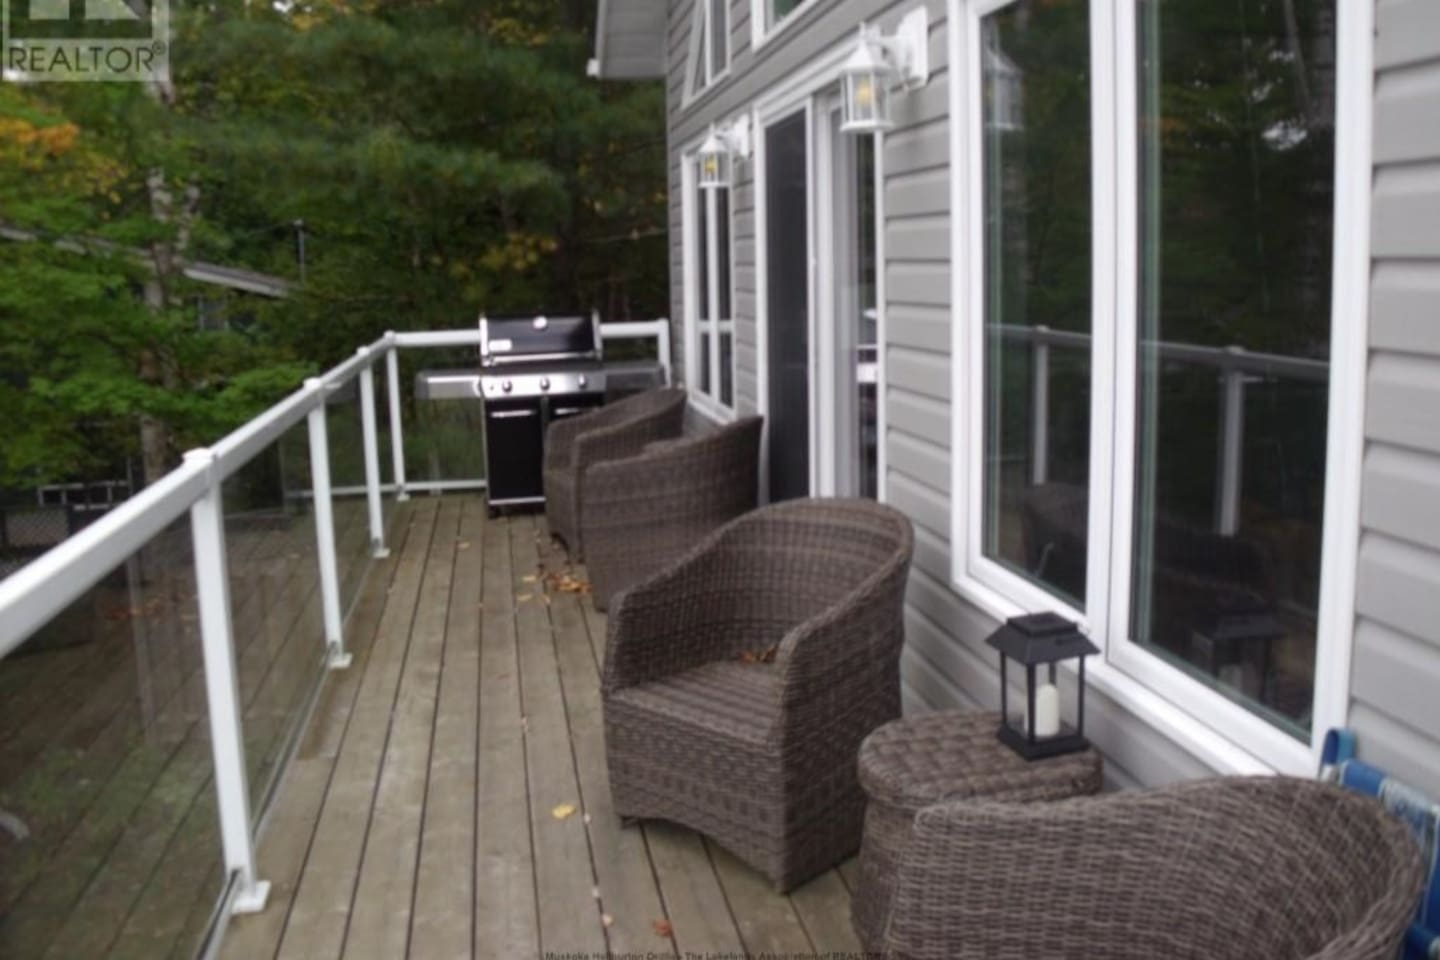 Top level walk-out deck for relaxing with lake views